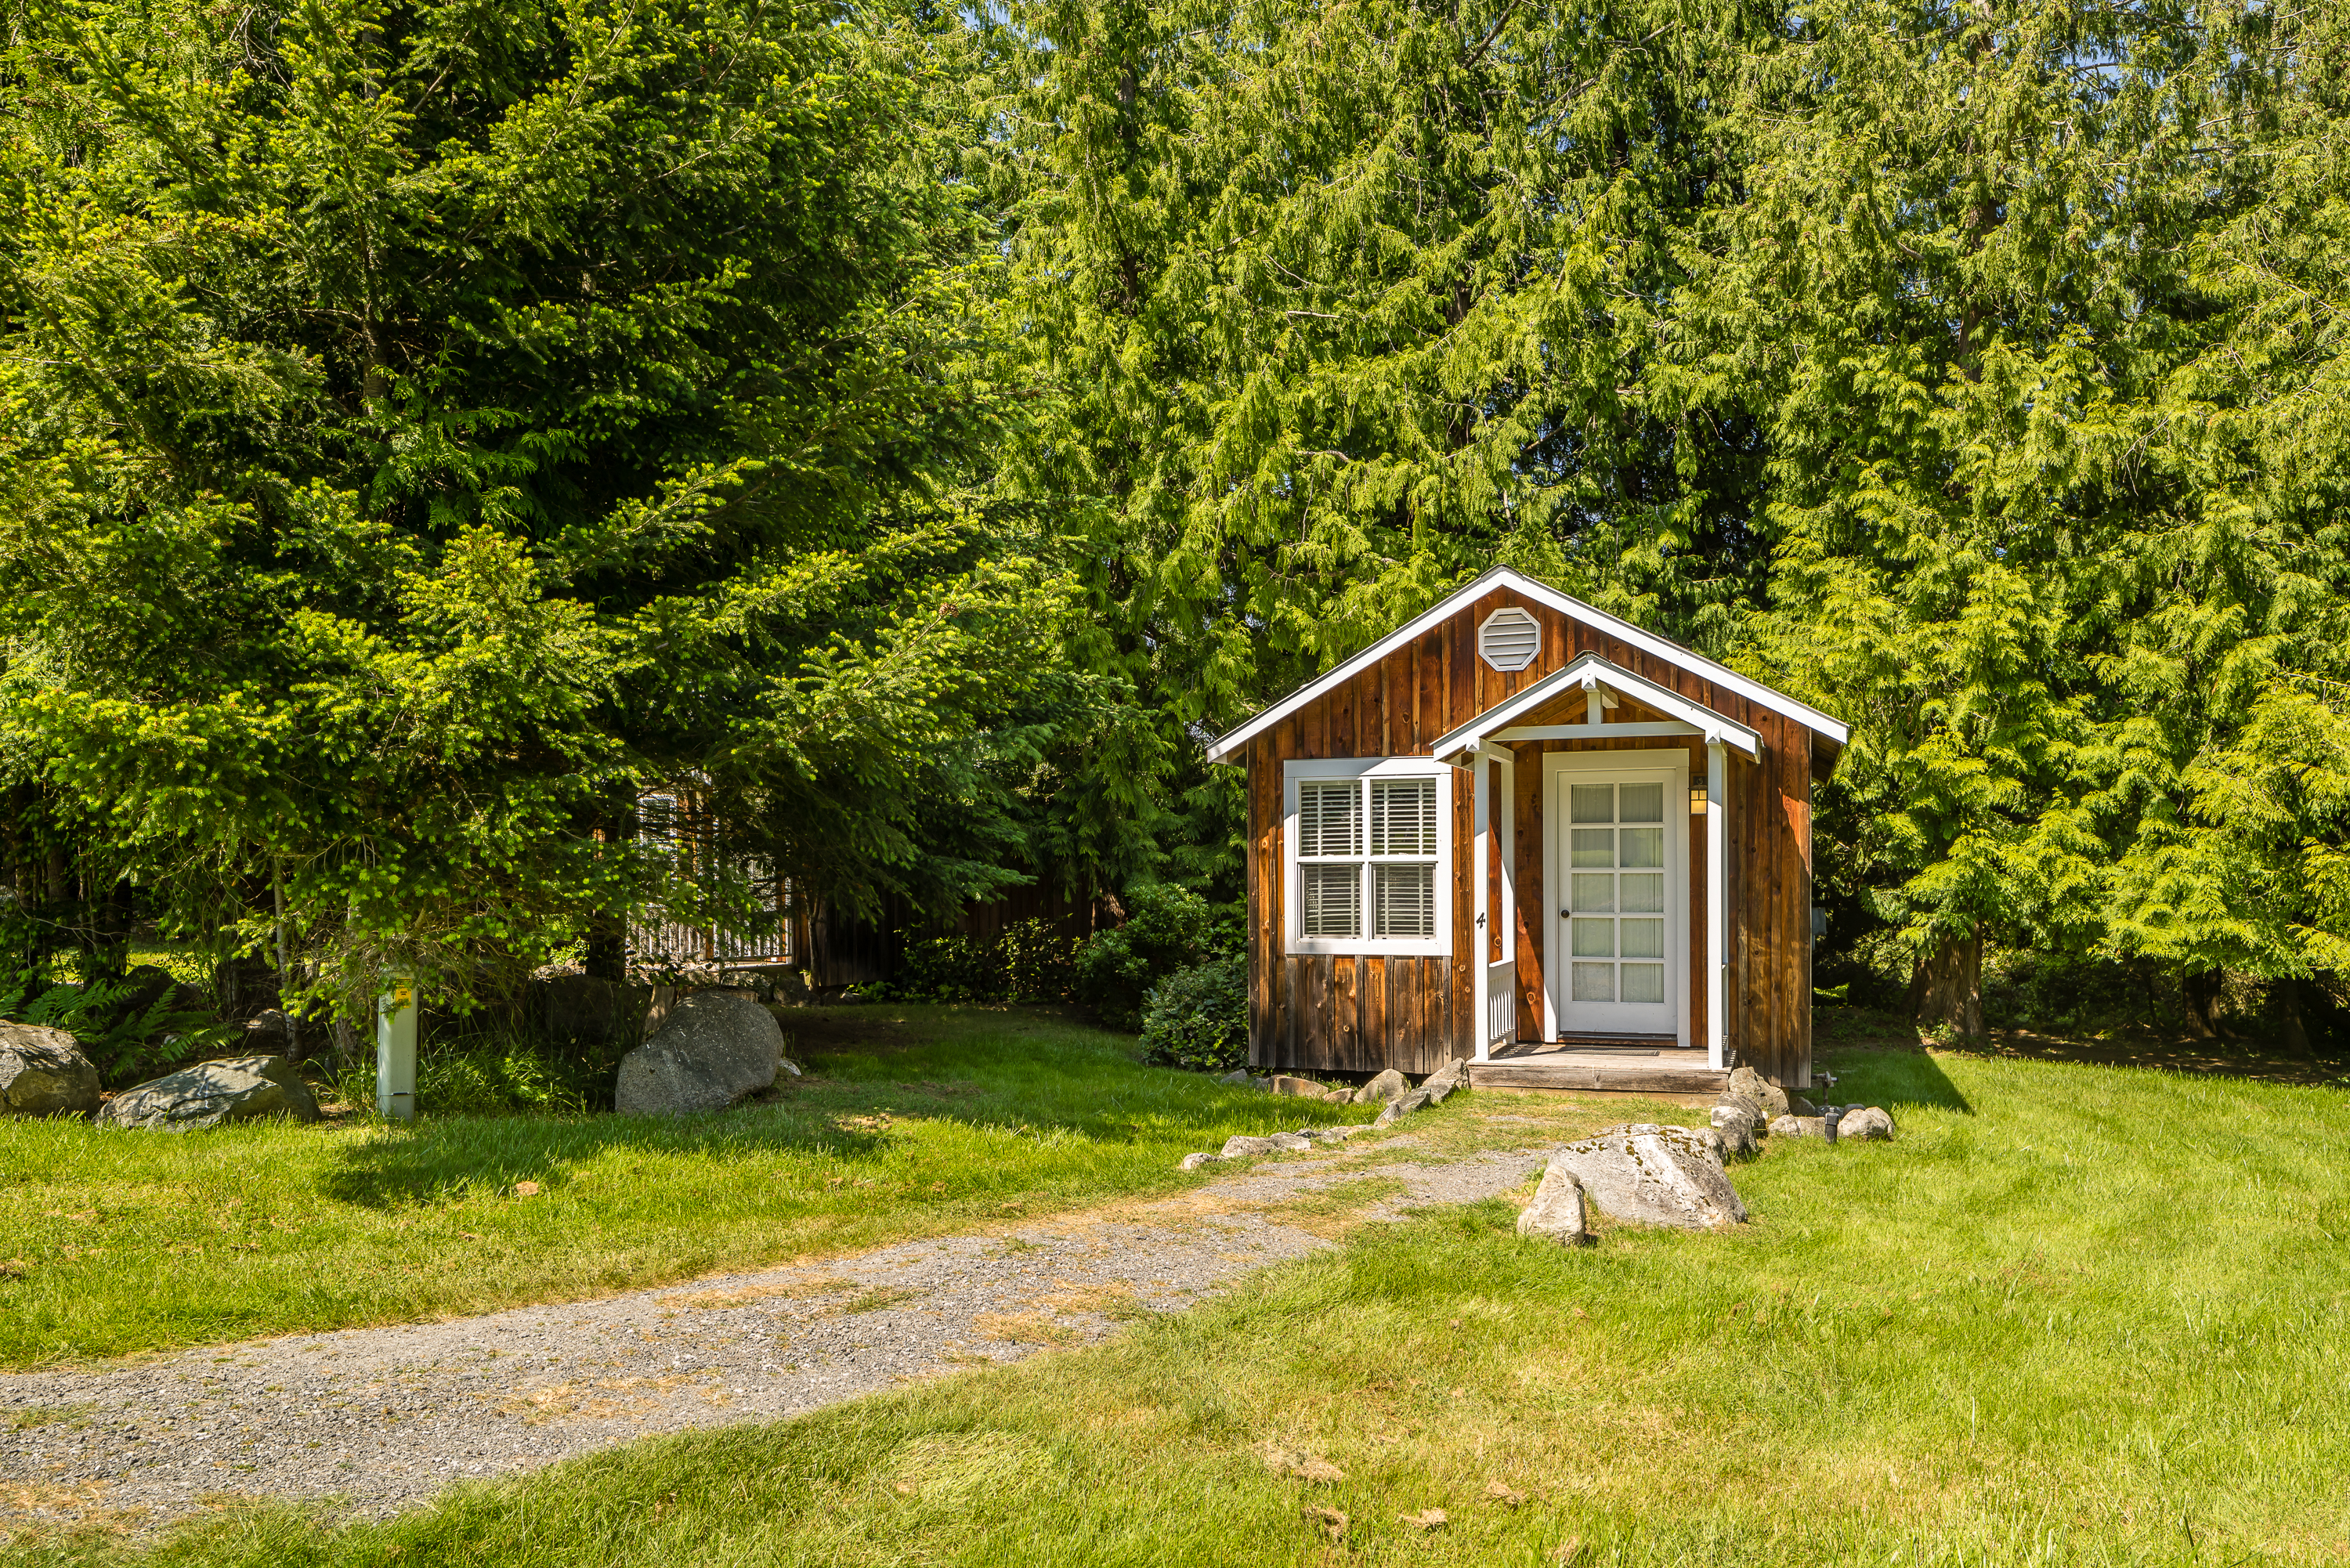 Lopez Farm Cottages - Lopez Island, Washington